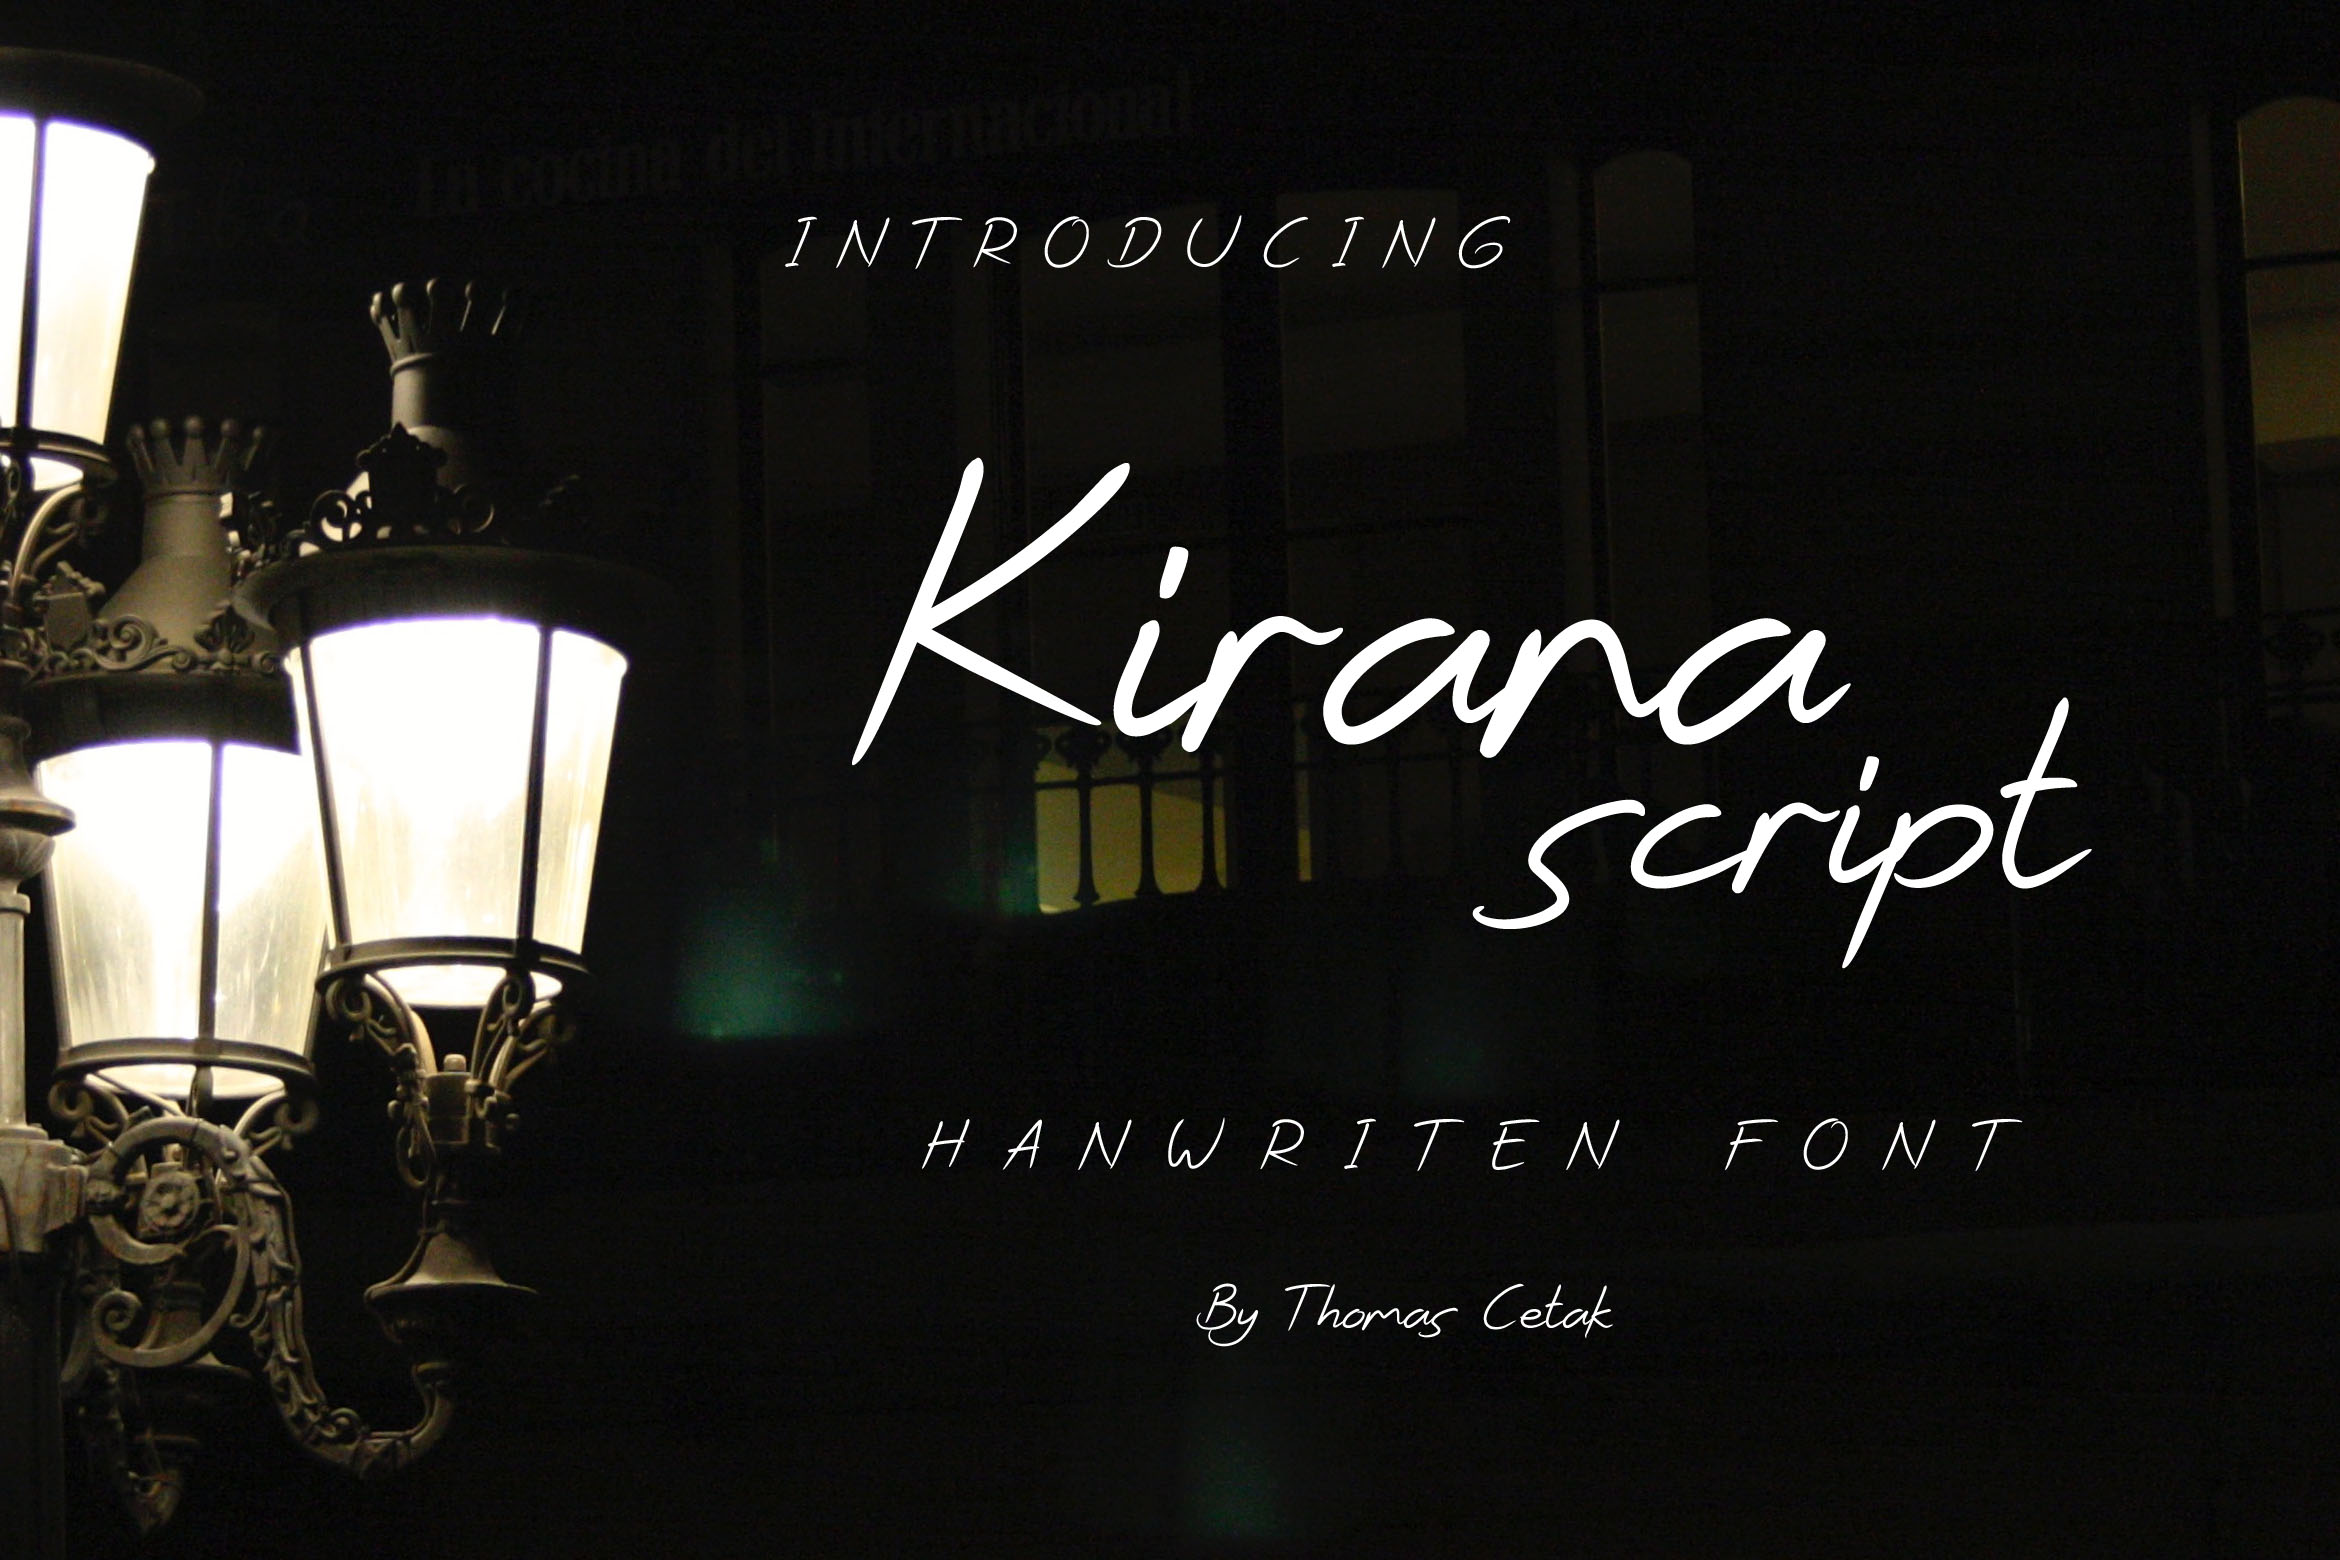 Download Free Kirana Script Font By Thomascetak Creative Fabrica for Cricut Explore, Silhouette and other cutting machines.